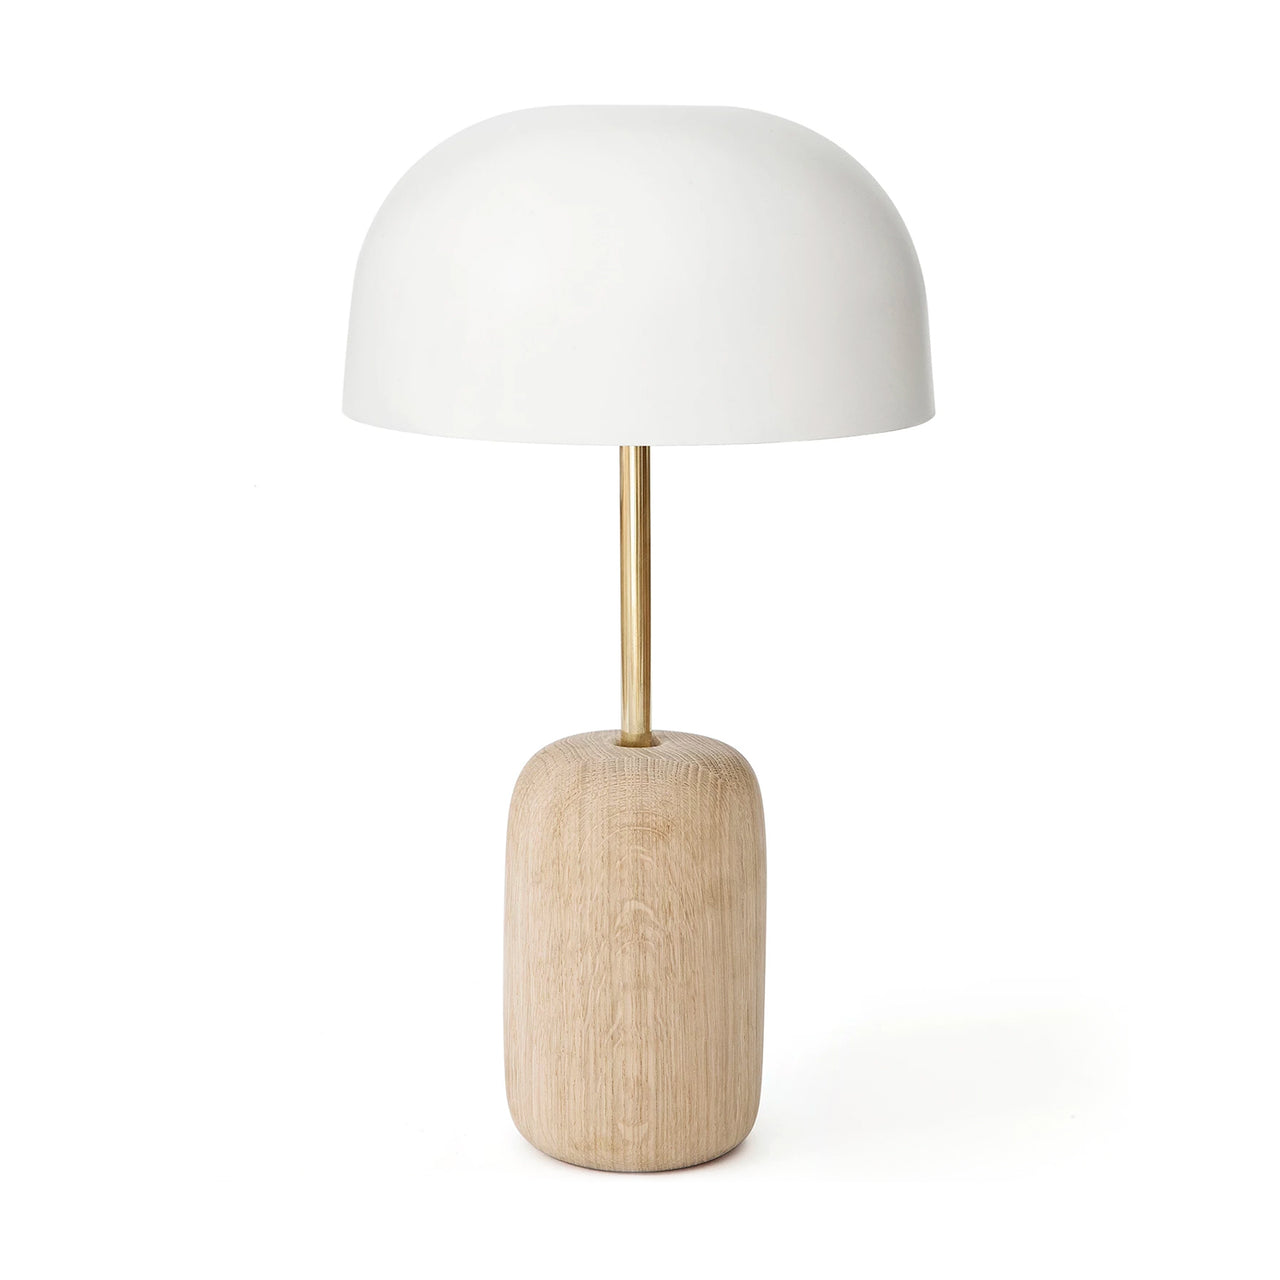 Nina Table Lamp: White